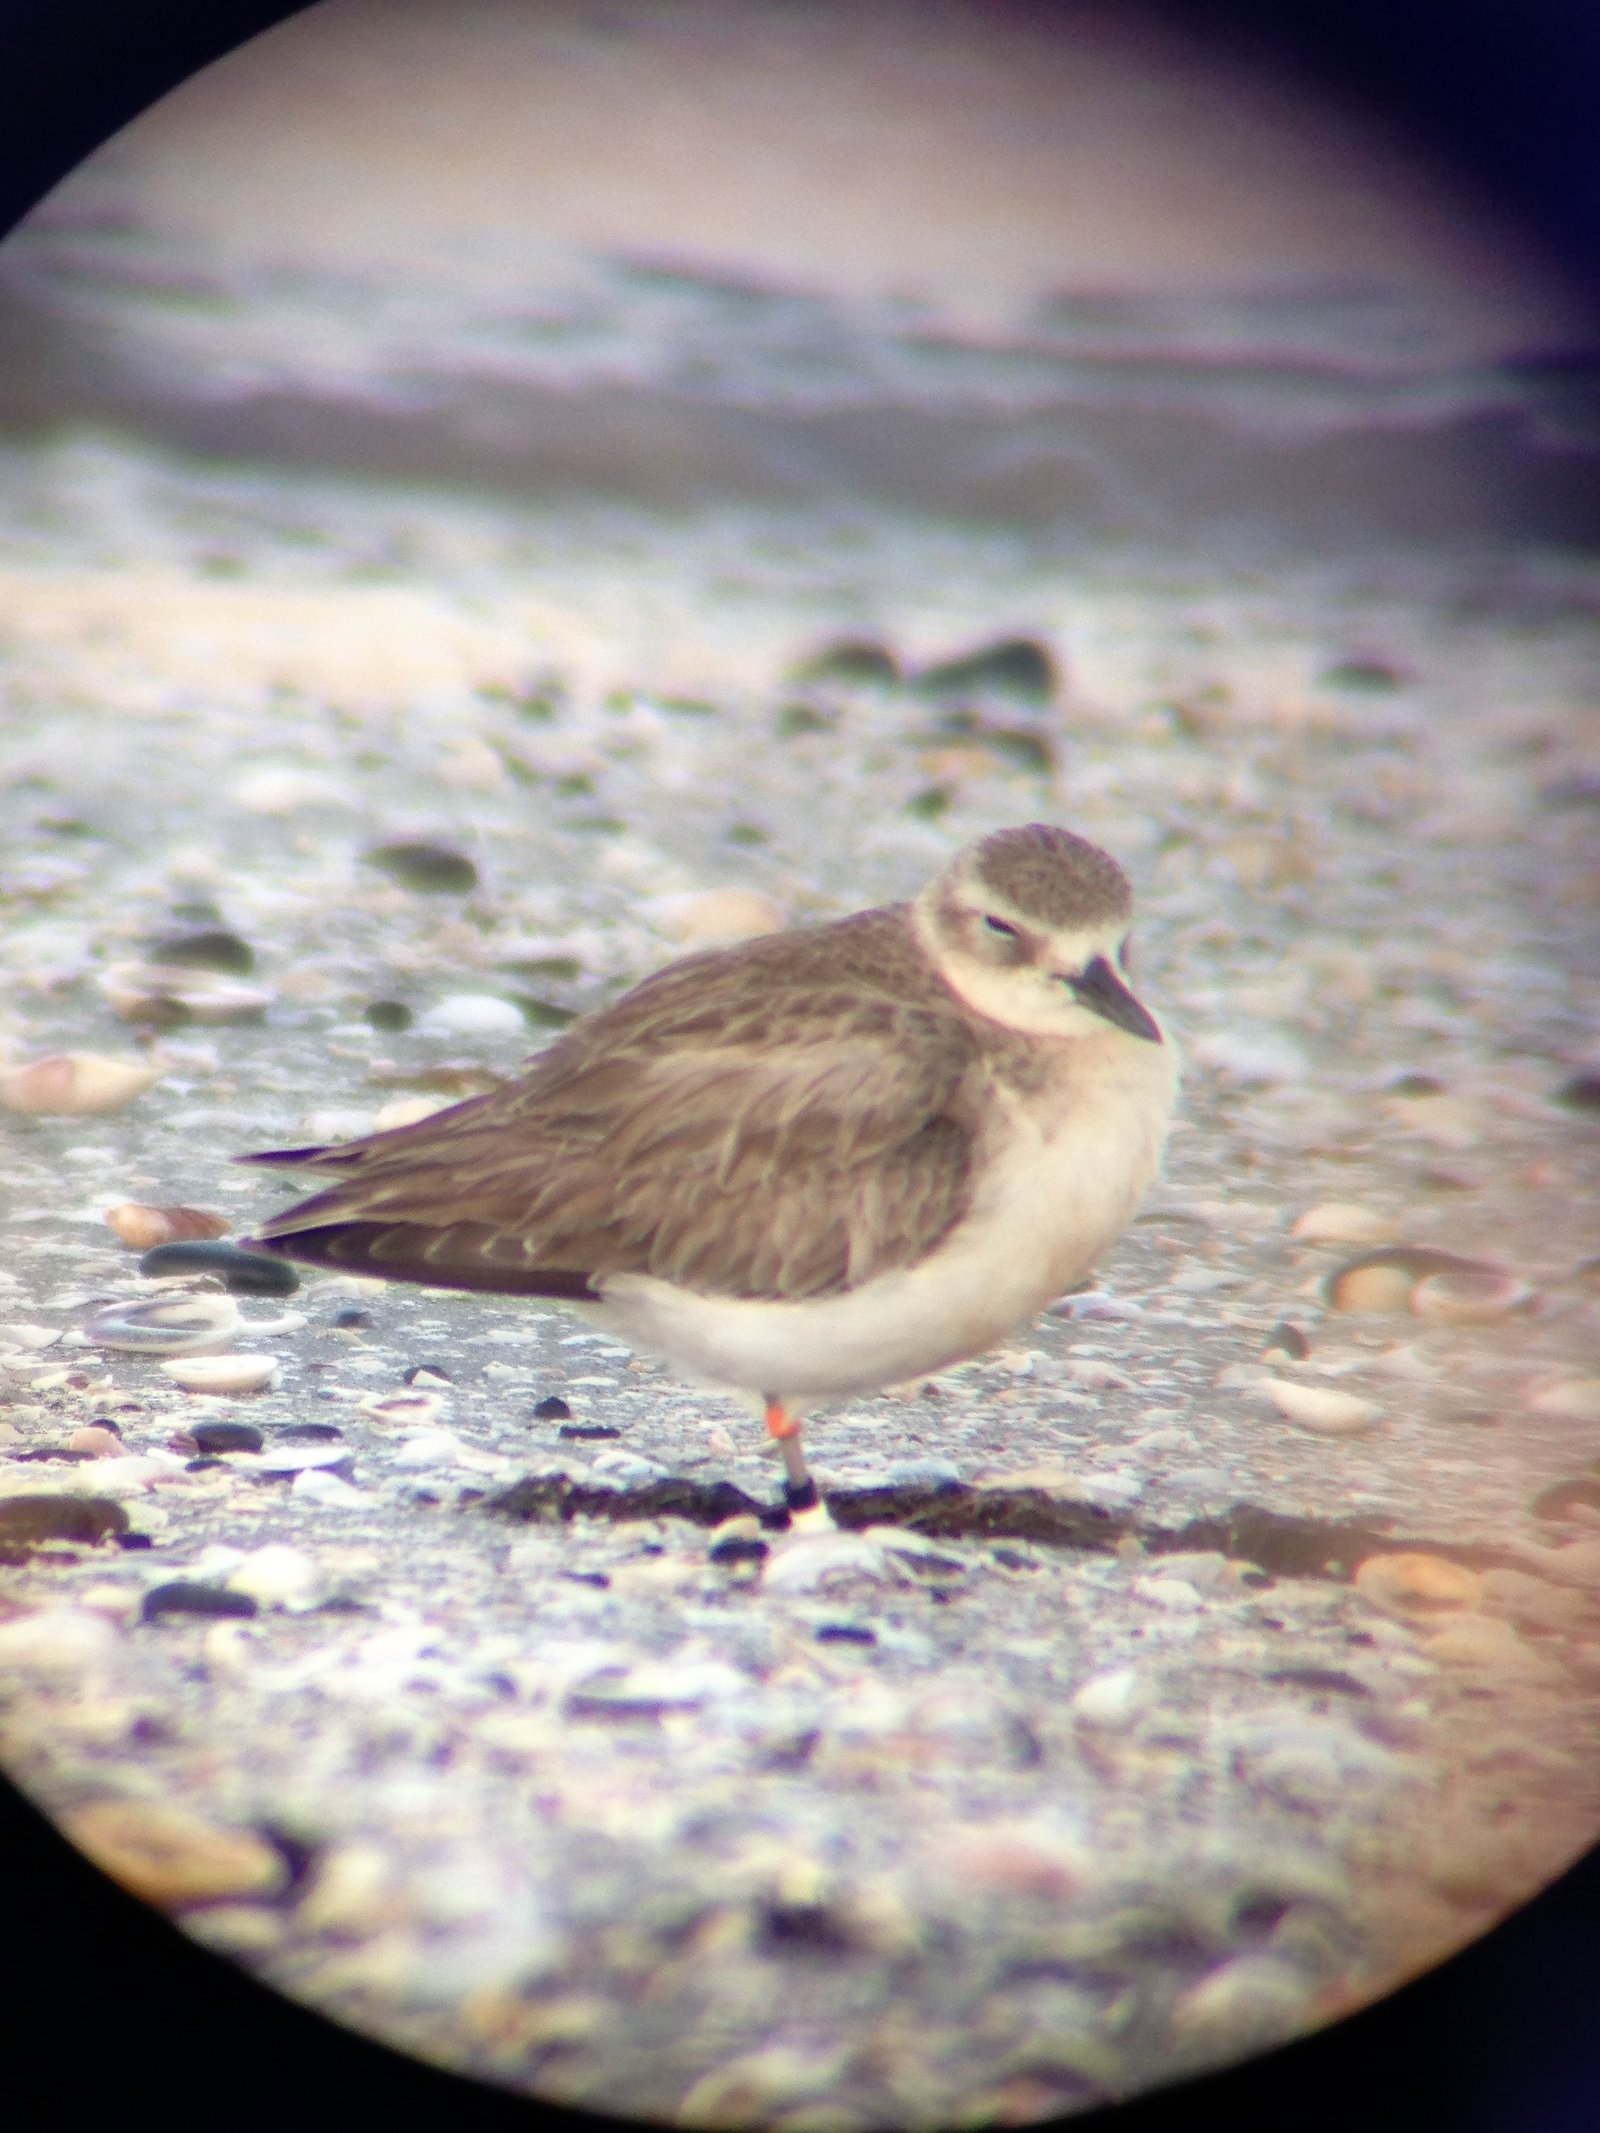 Northern NZ dotterel M-OKW having a wee snooze. Taken with my phone through the telescope.